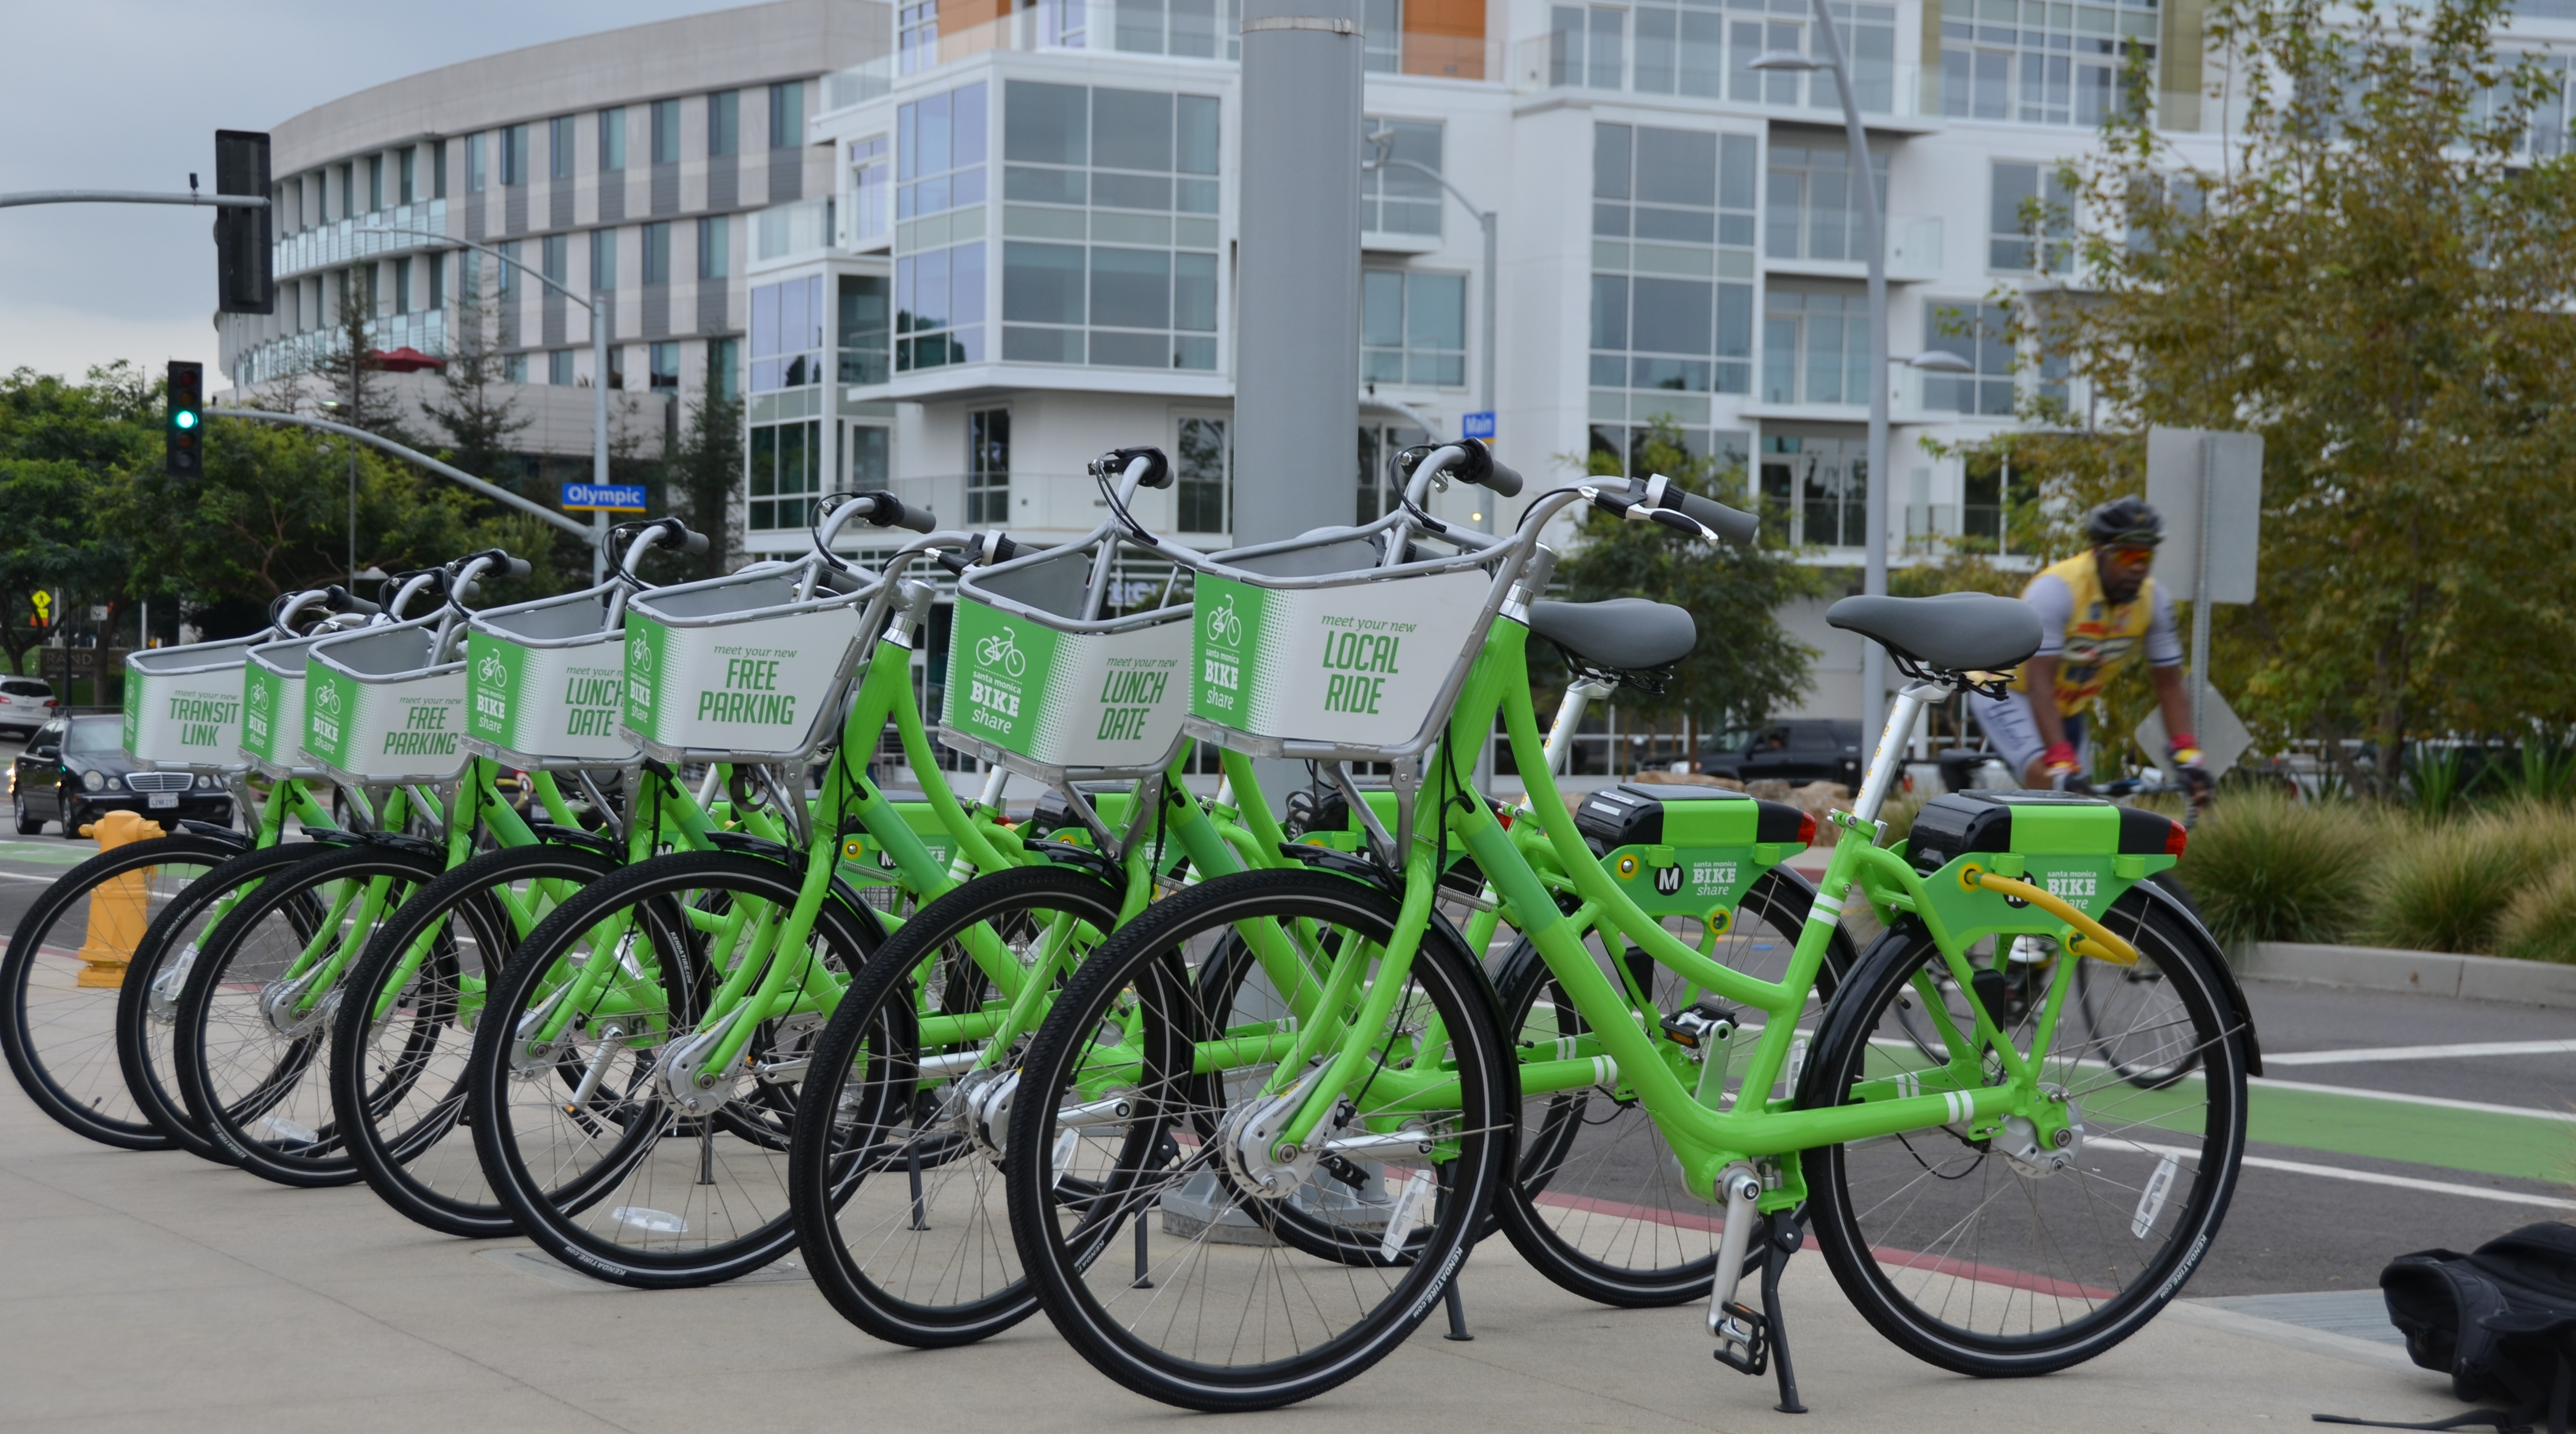 LA's First Bikeshare Program Has Launched in Santa Monica - The ...